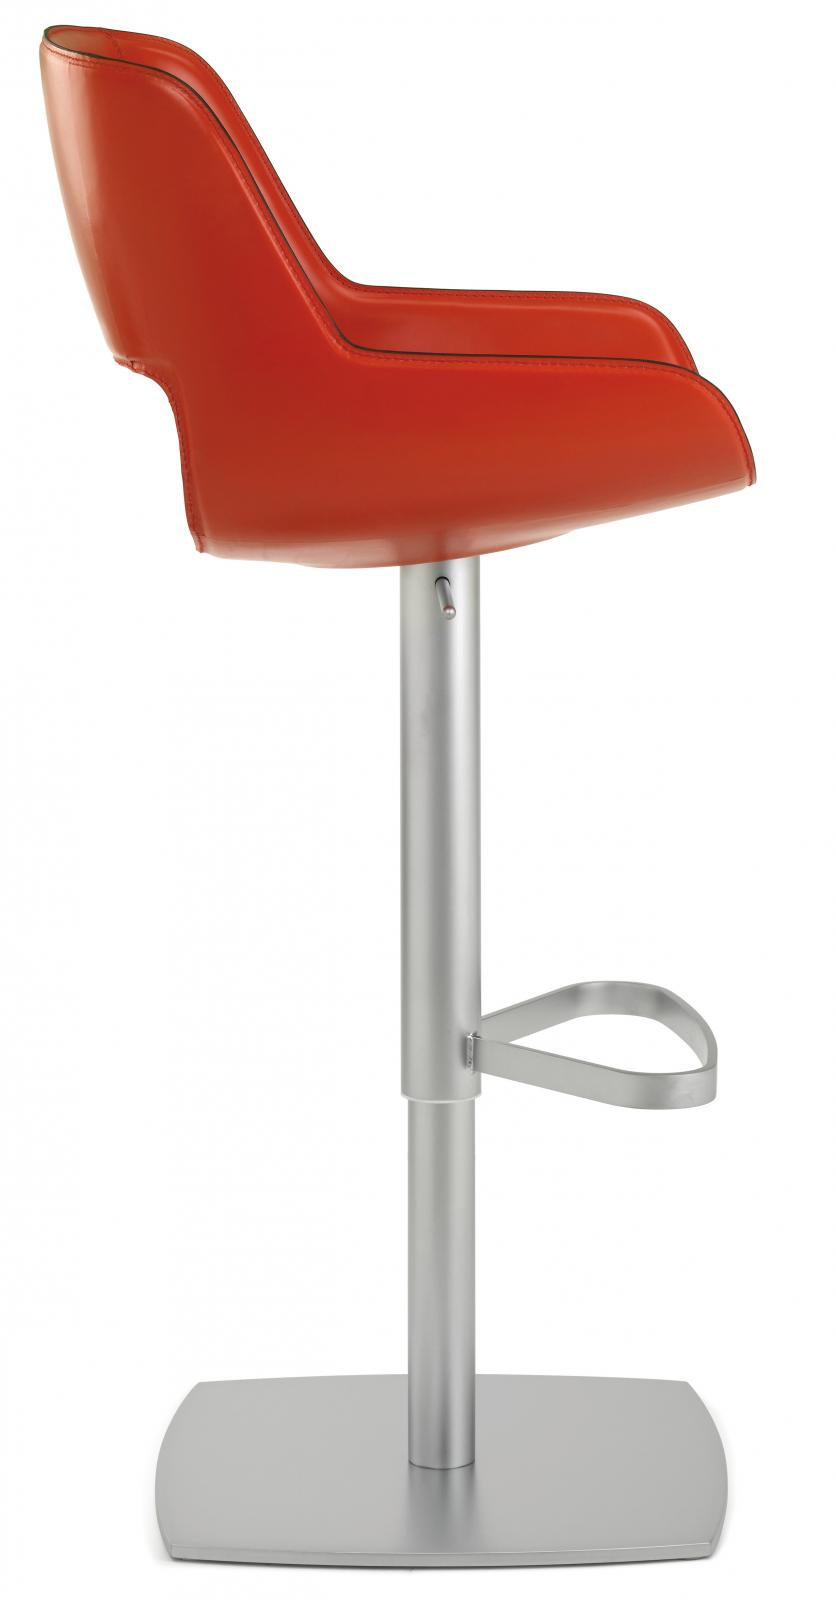 MODERN-LEATHER-STOOLS-ITALIAN-FURNITURE_G (10).jpg